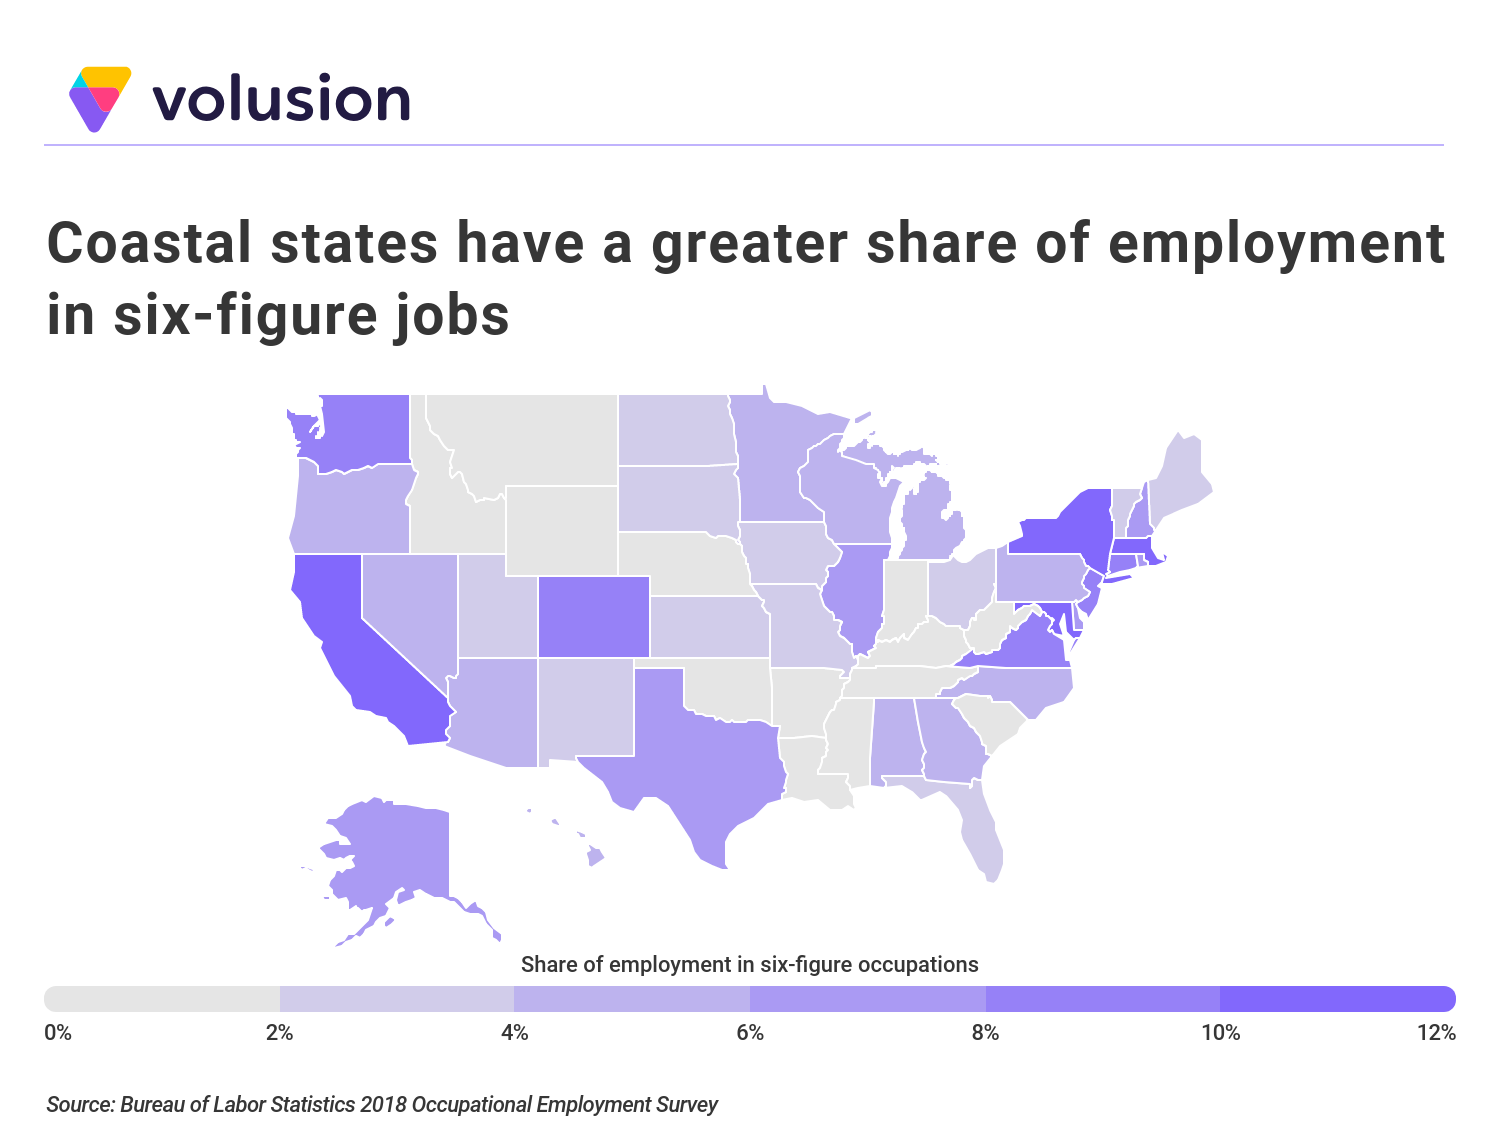 Heatmap showing the percentage of six-figure jobs by state in the U.S. in 2018